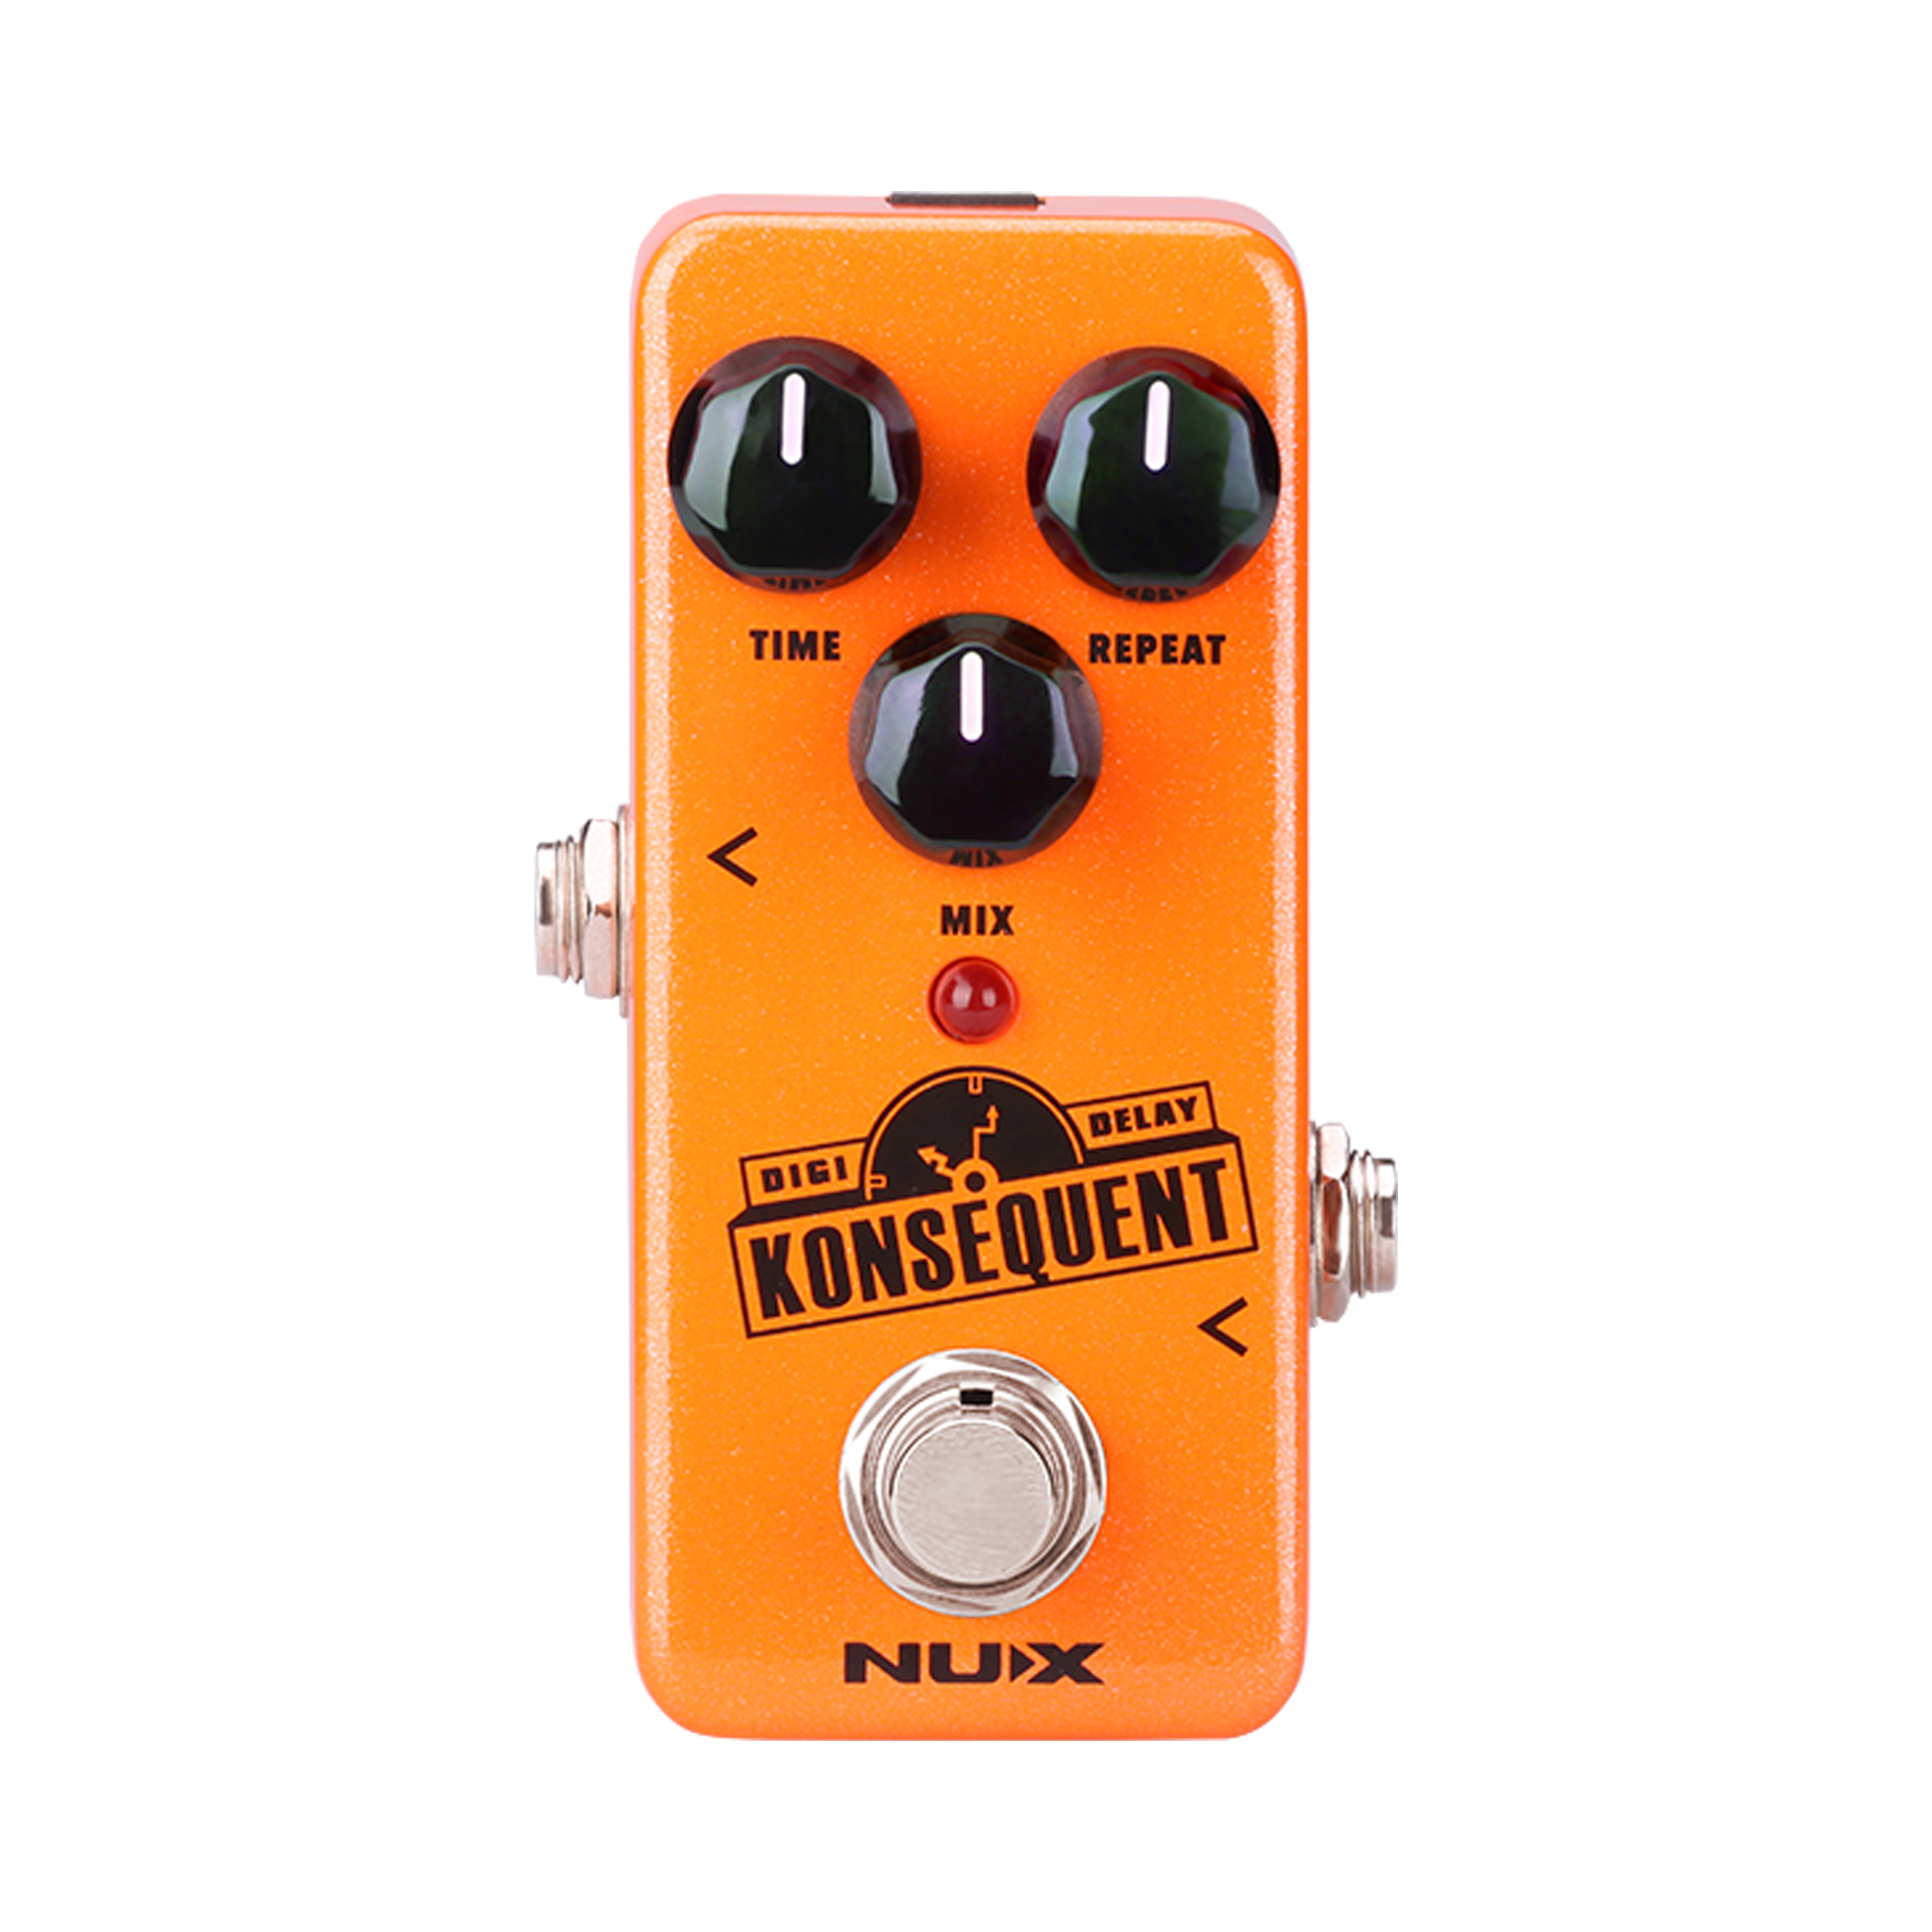 NUX Konsequent Digital Delay Guitar Effect Pedal Dotted 8 / Simple Delay Modes Mini Core Series Stompbox has Re-defined delay nux 1 8 lcd time force delay guitar effect pedal white black